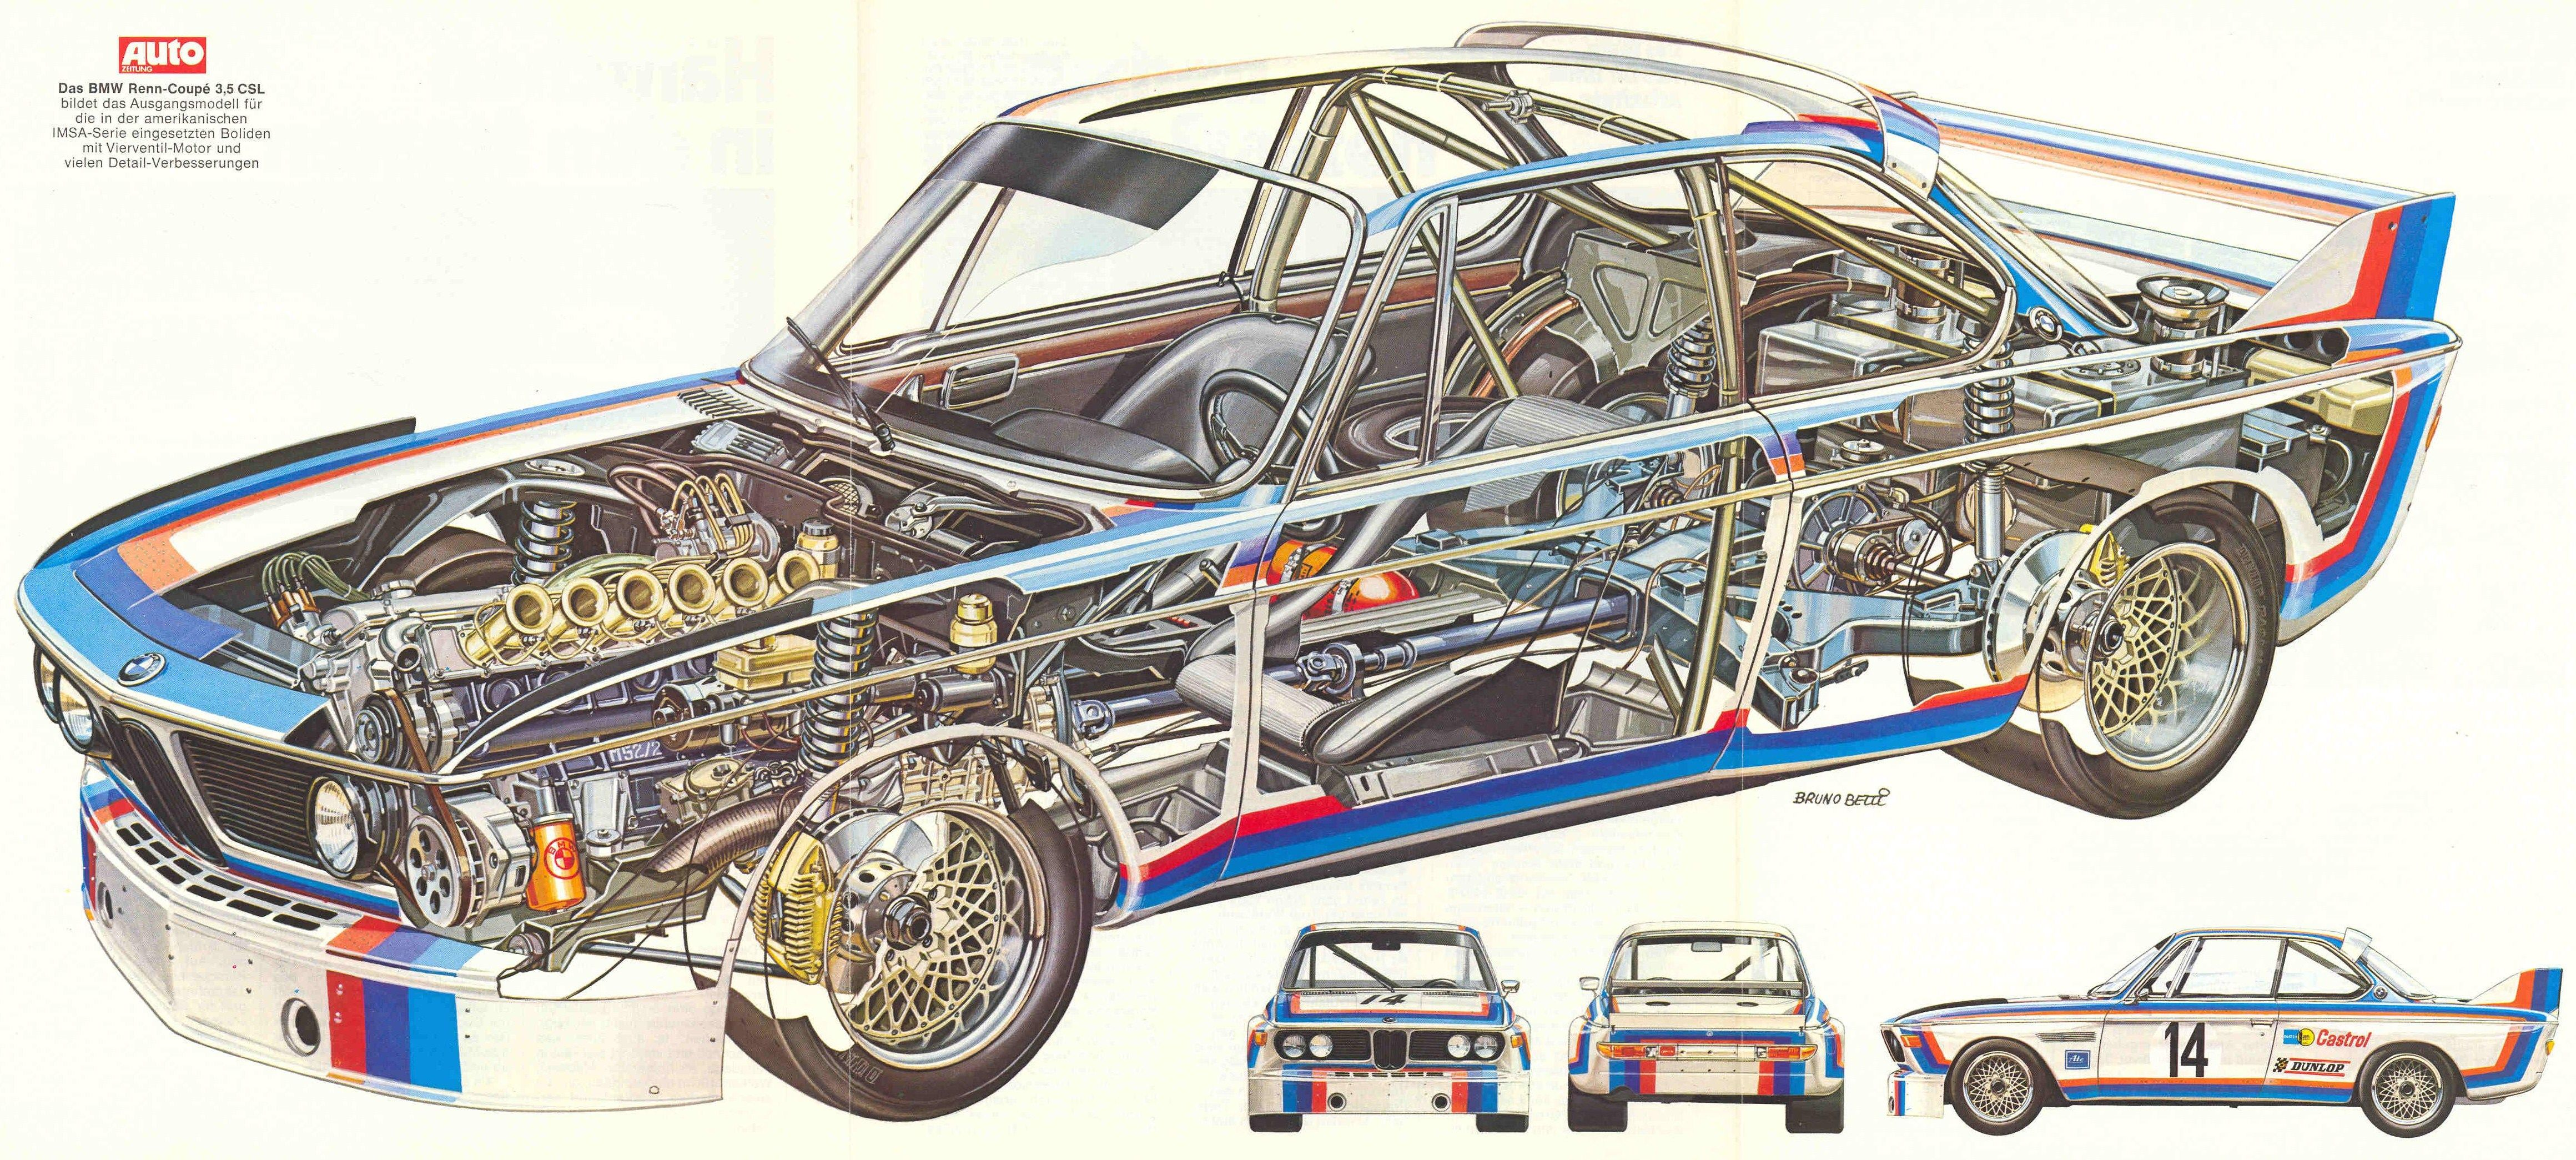 1975 (?) BMW 3.5CSL - Illustrated by Bruno Betti ...